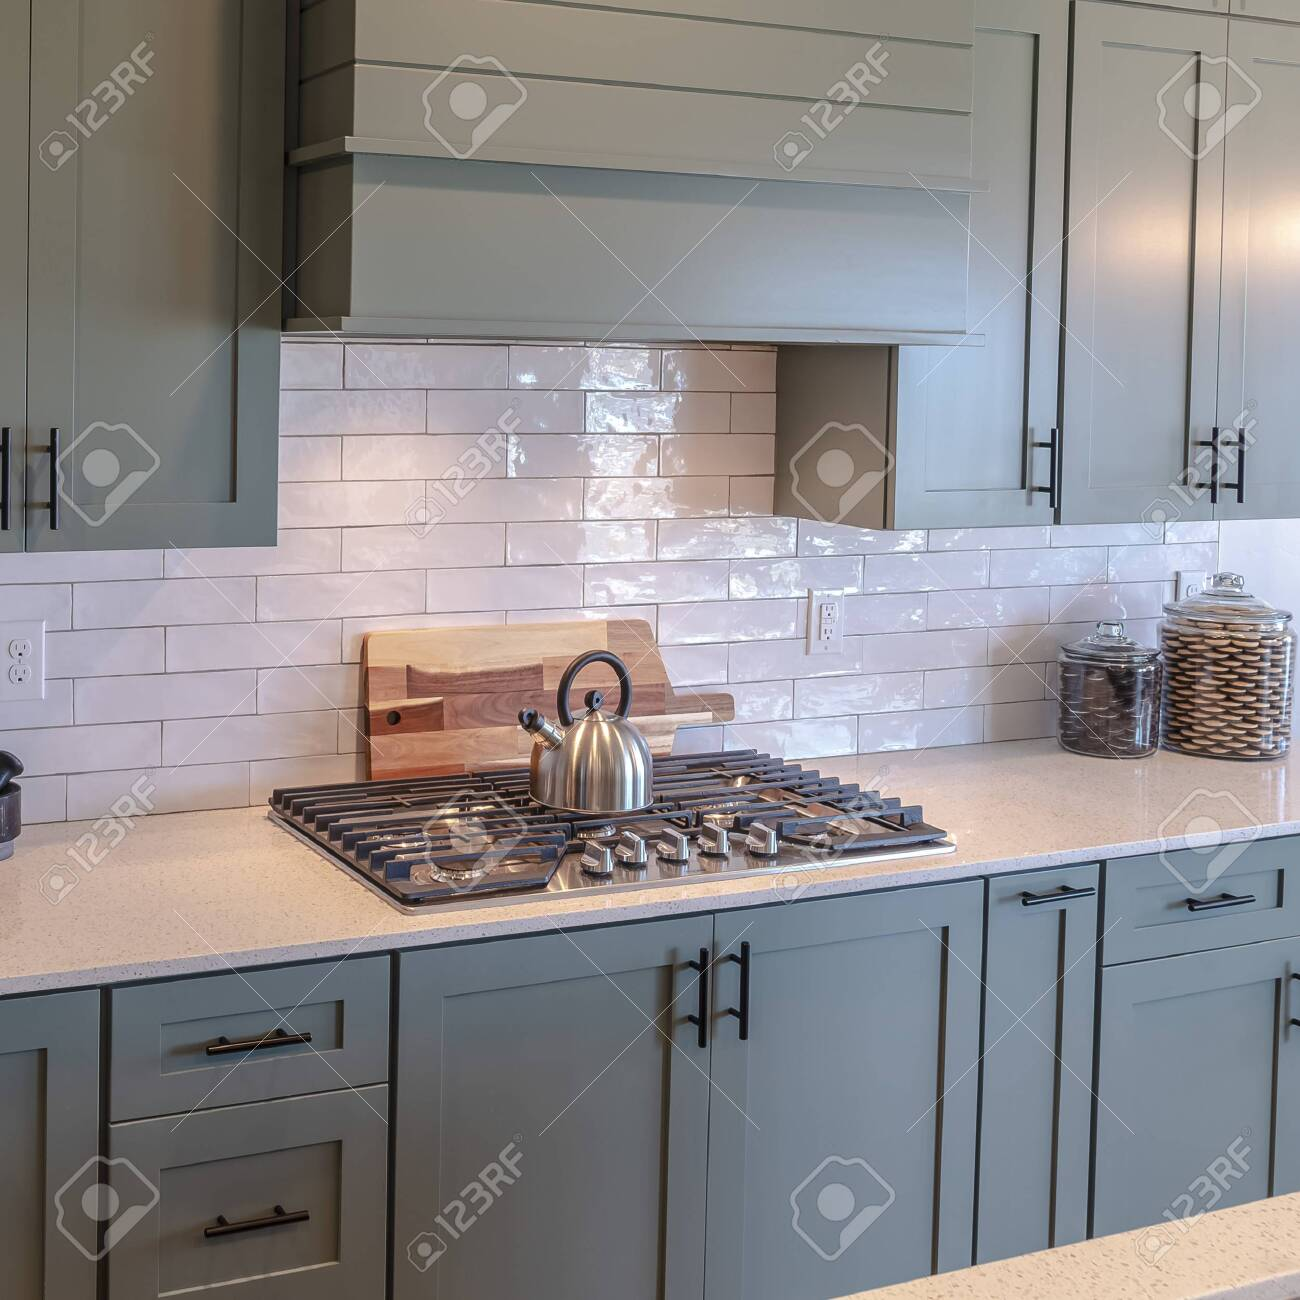 https www 123rf com photo 139157173 photo square frame wooden cabinets and white counter top inside a kitchen with tile backsplash kitch html